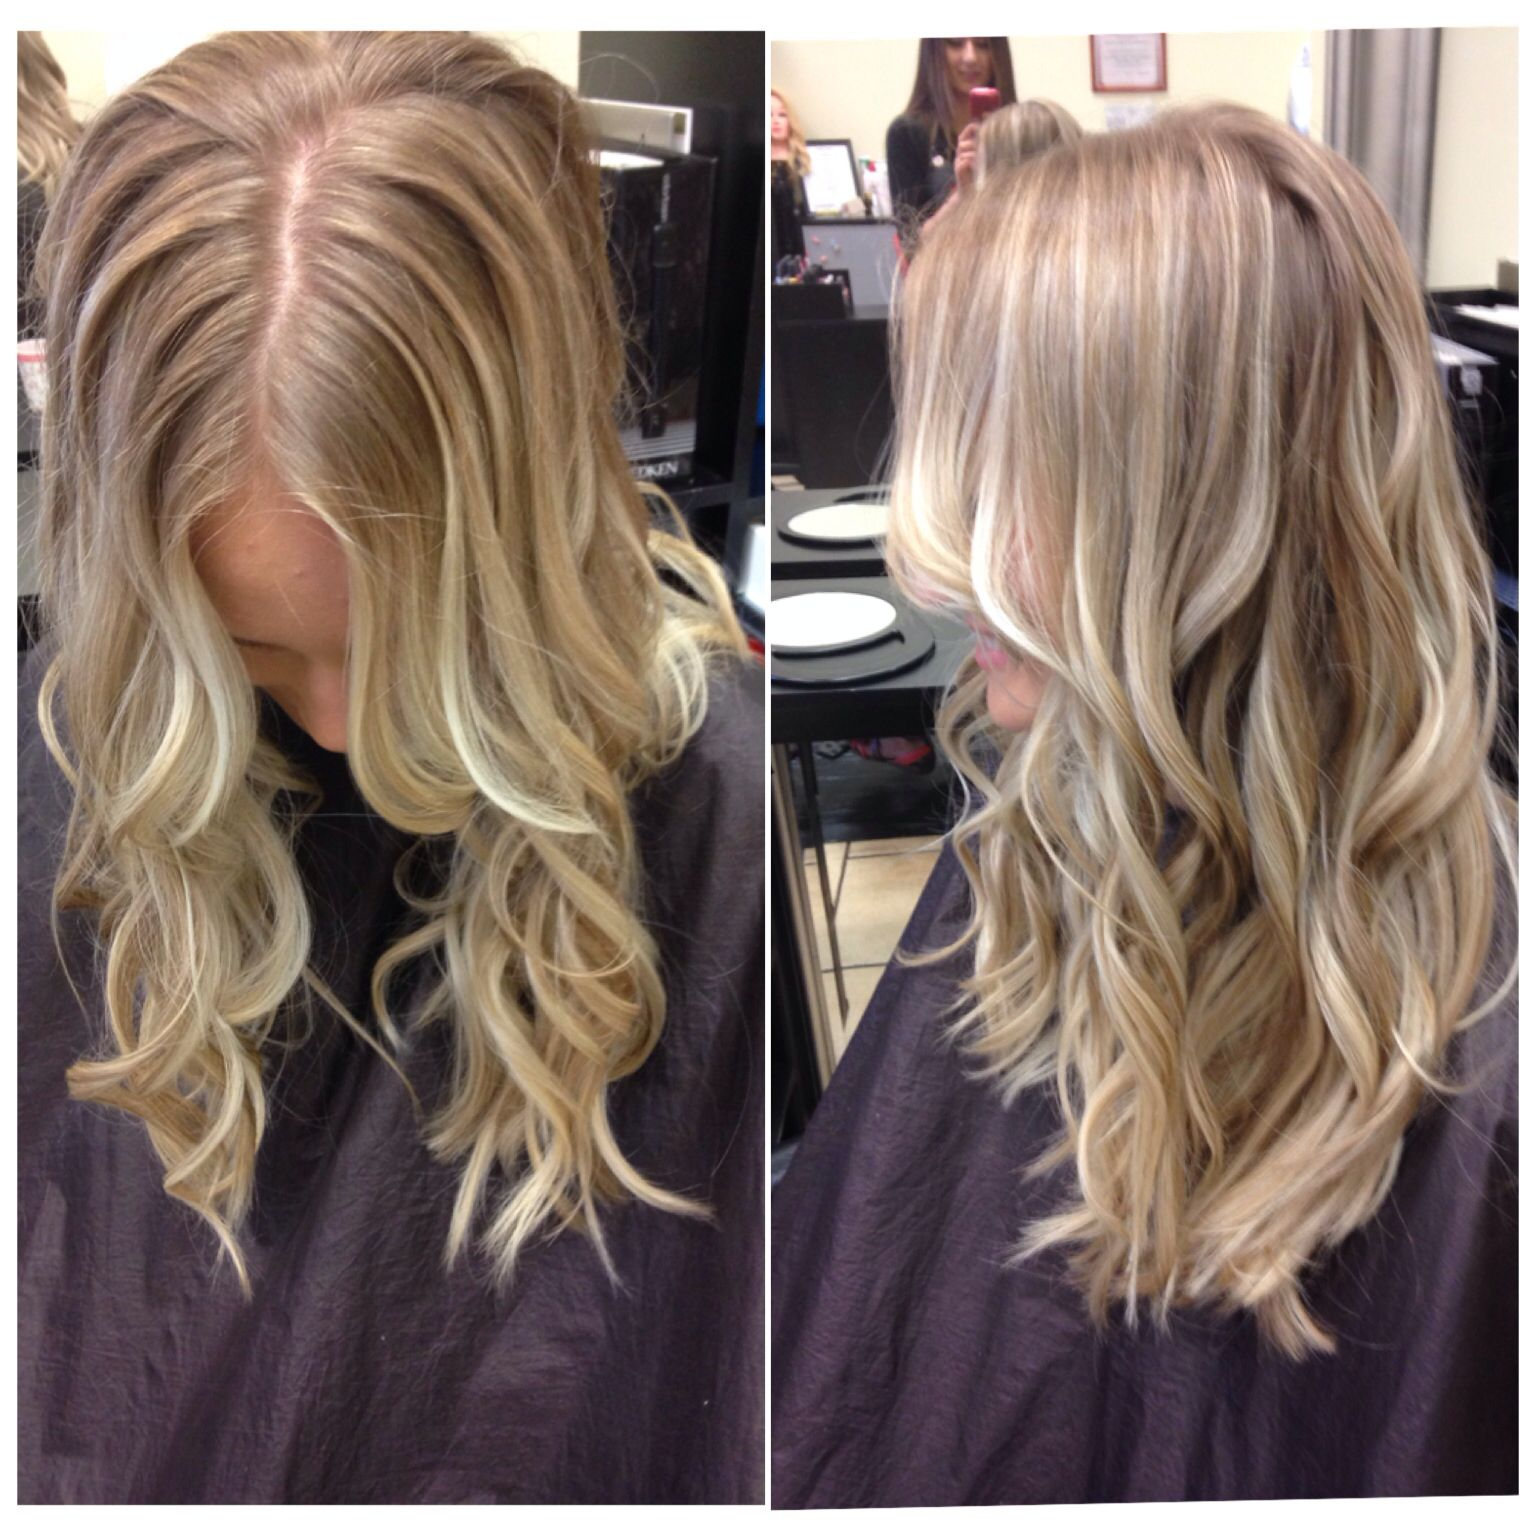 Instead of a root touch up let\u0027s Balayage!